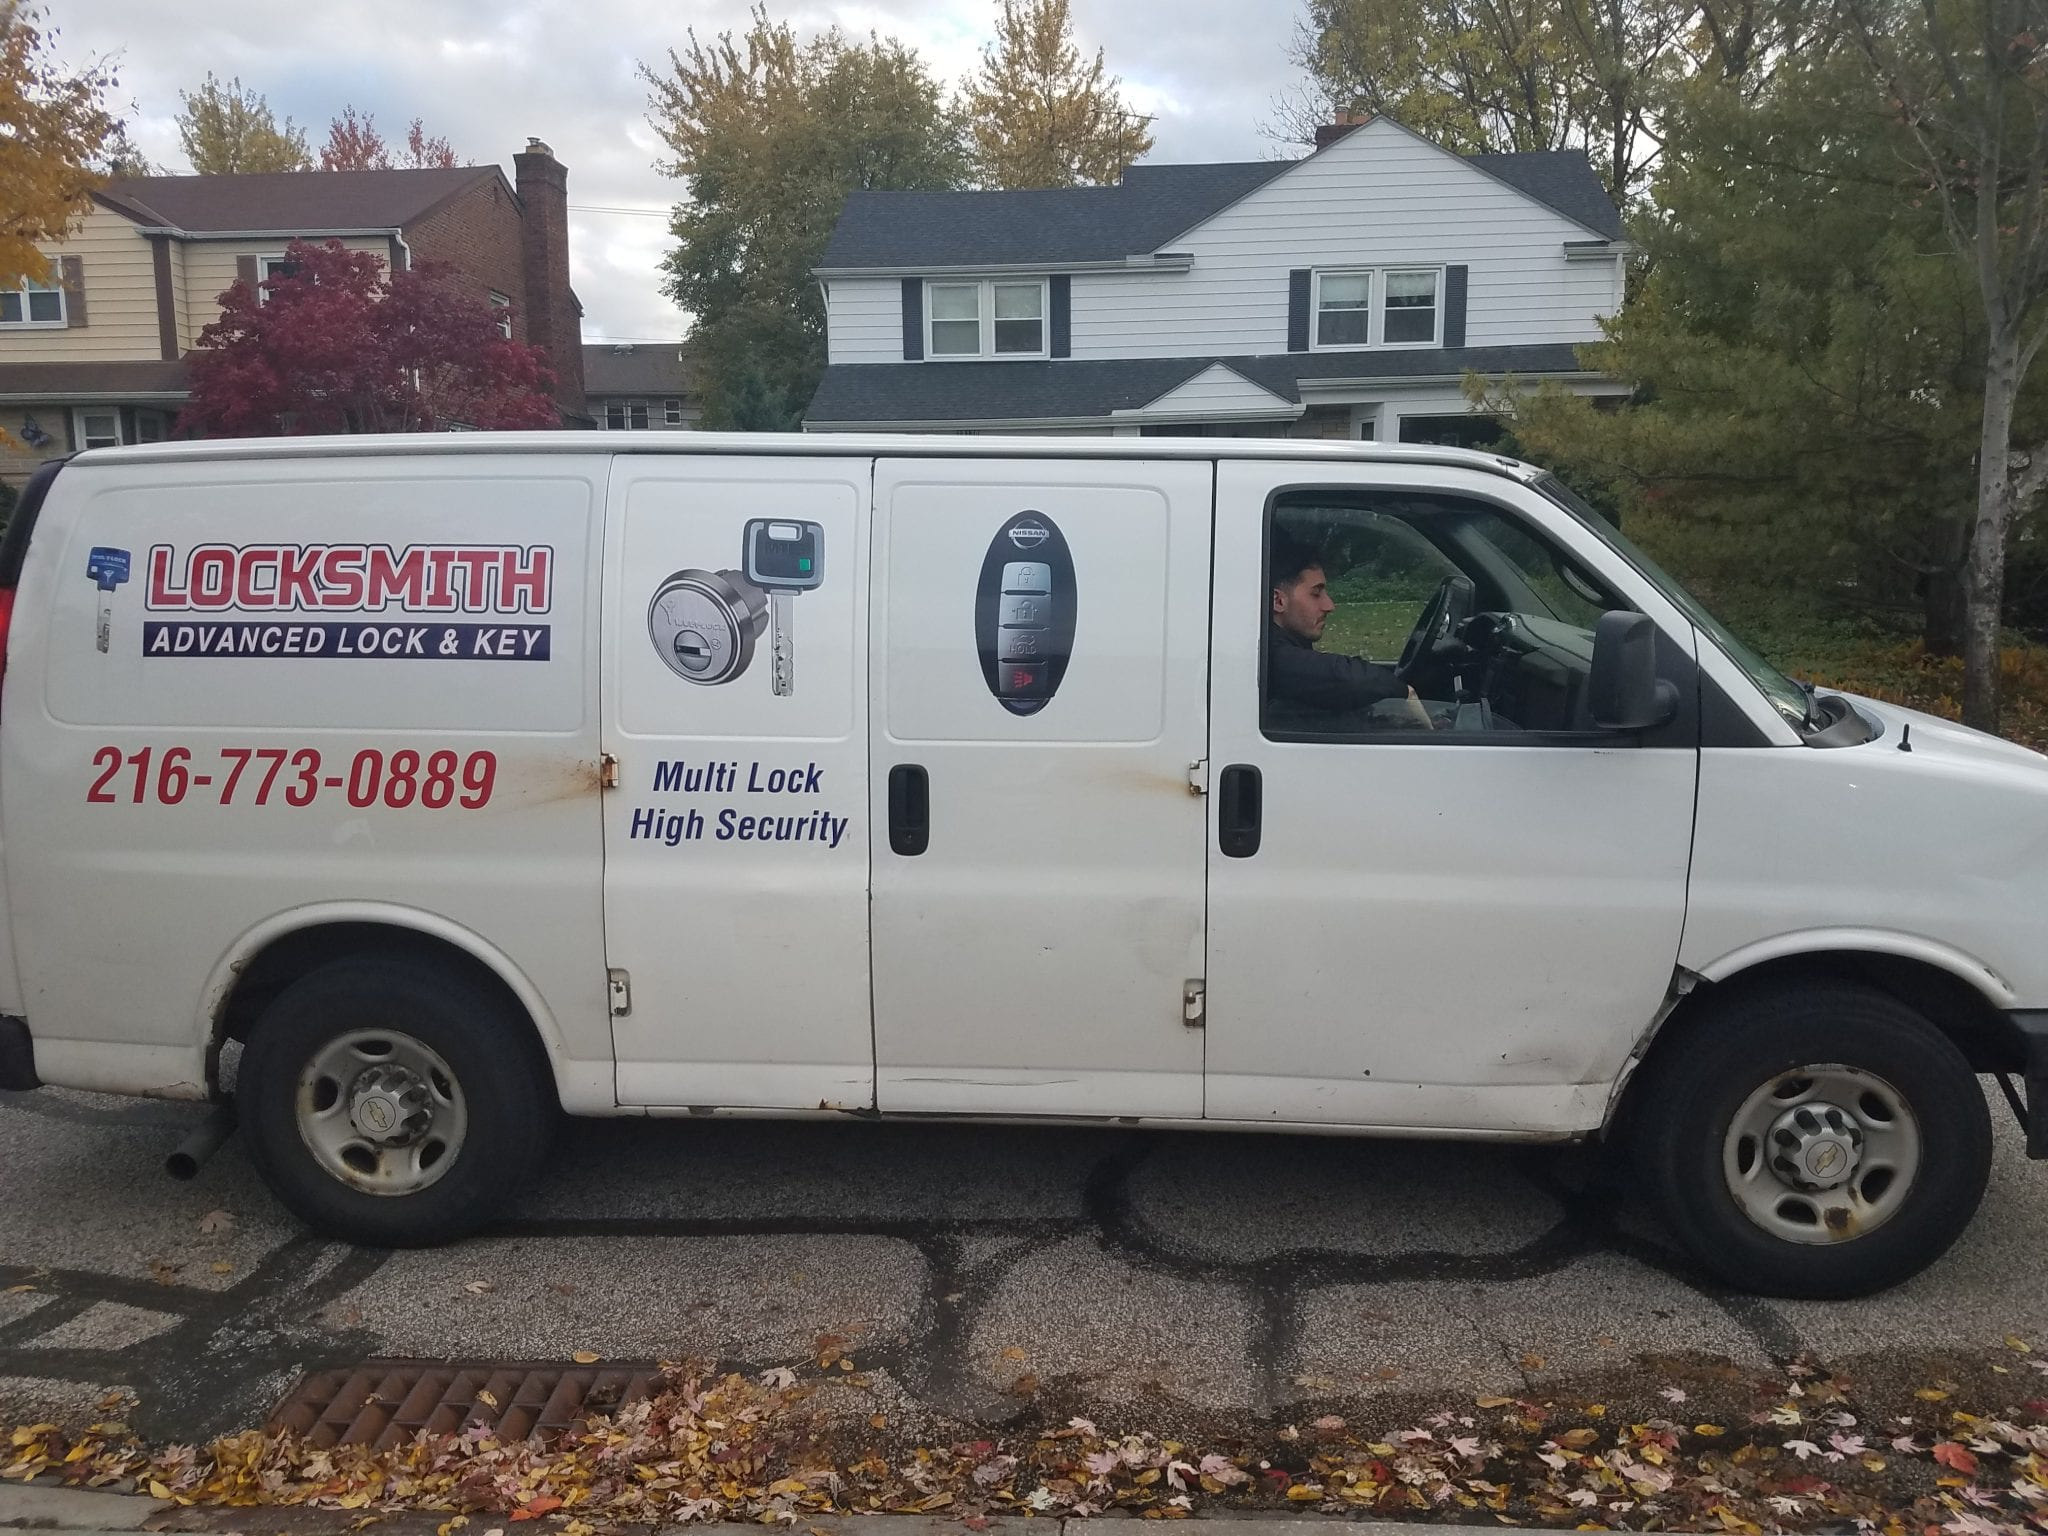 Our locksmith unit